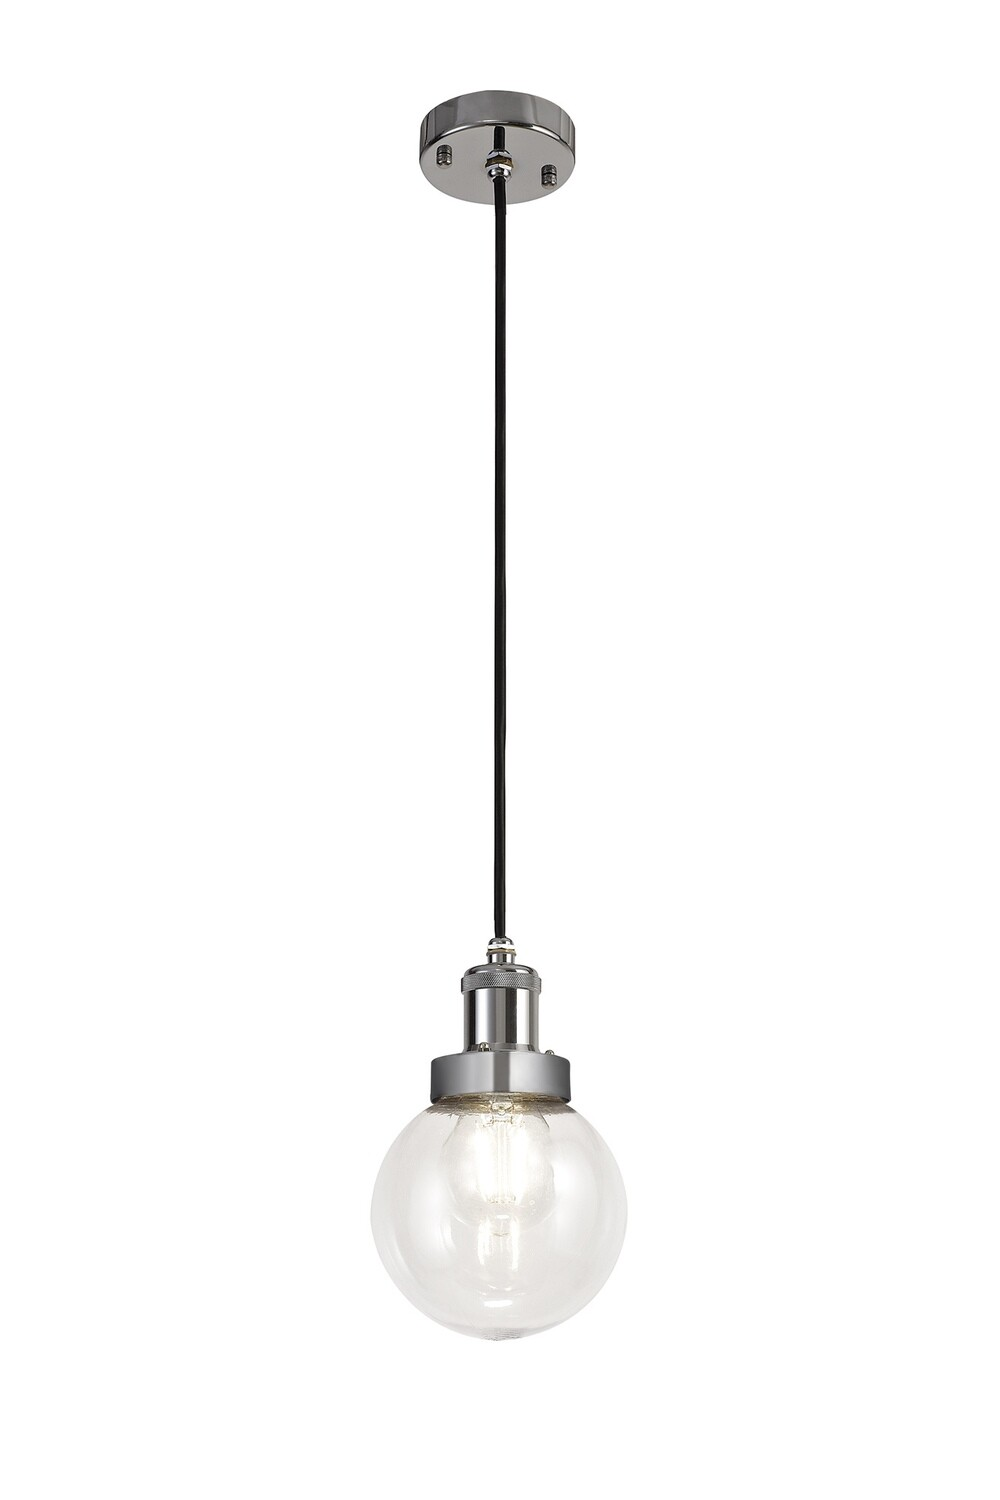 Juliet Pendant 1 Light E27 IP65 Exterior Titanium Silver/Polished Chrome